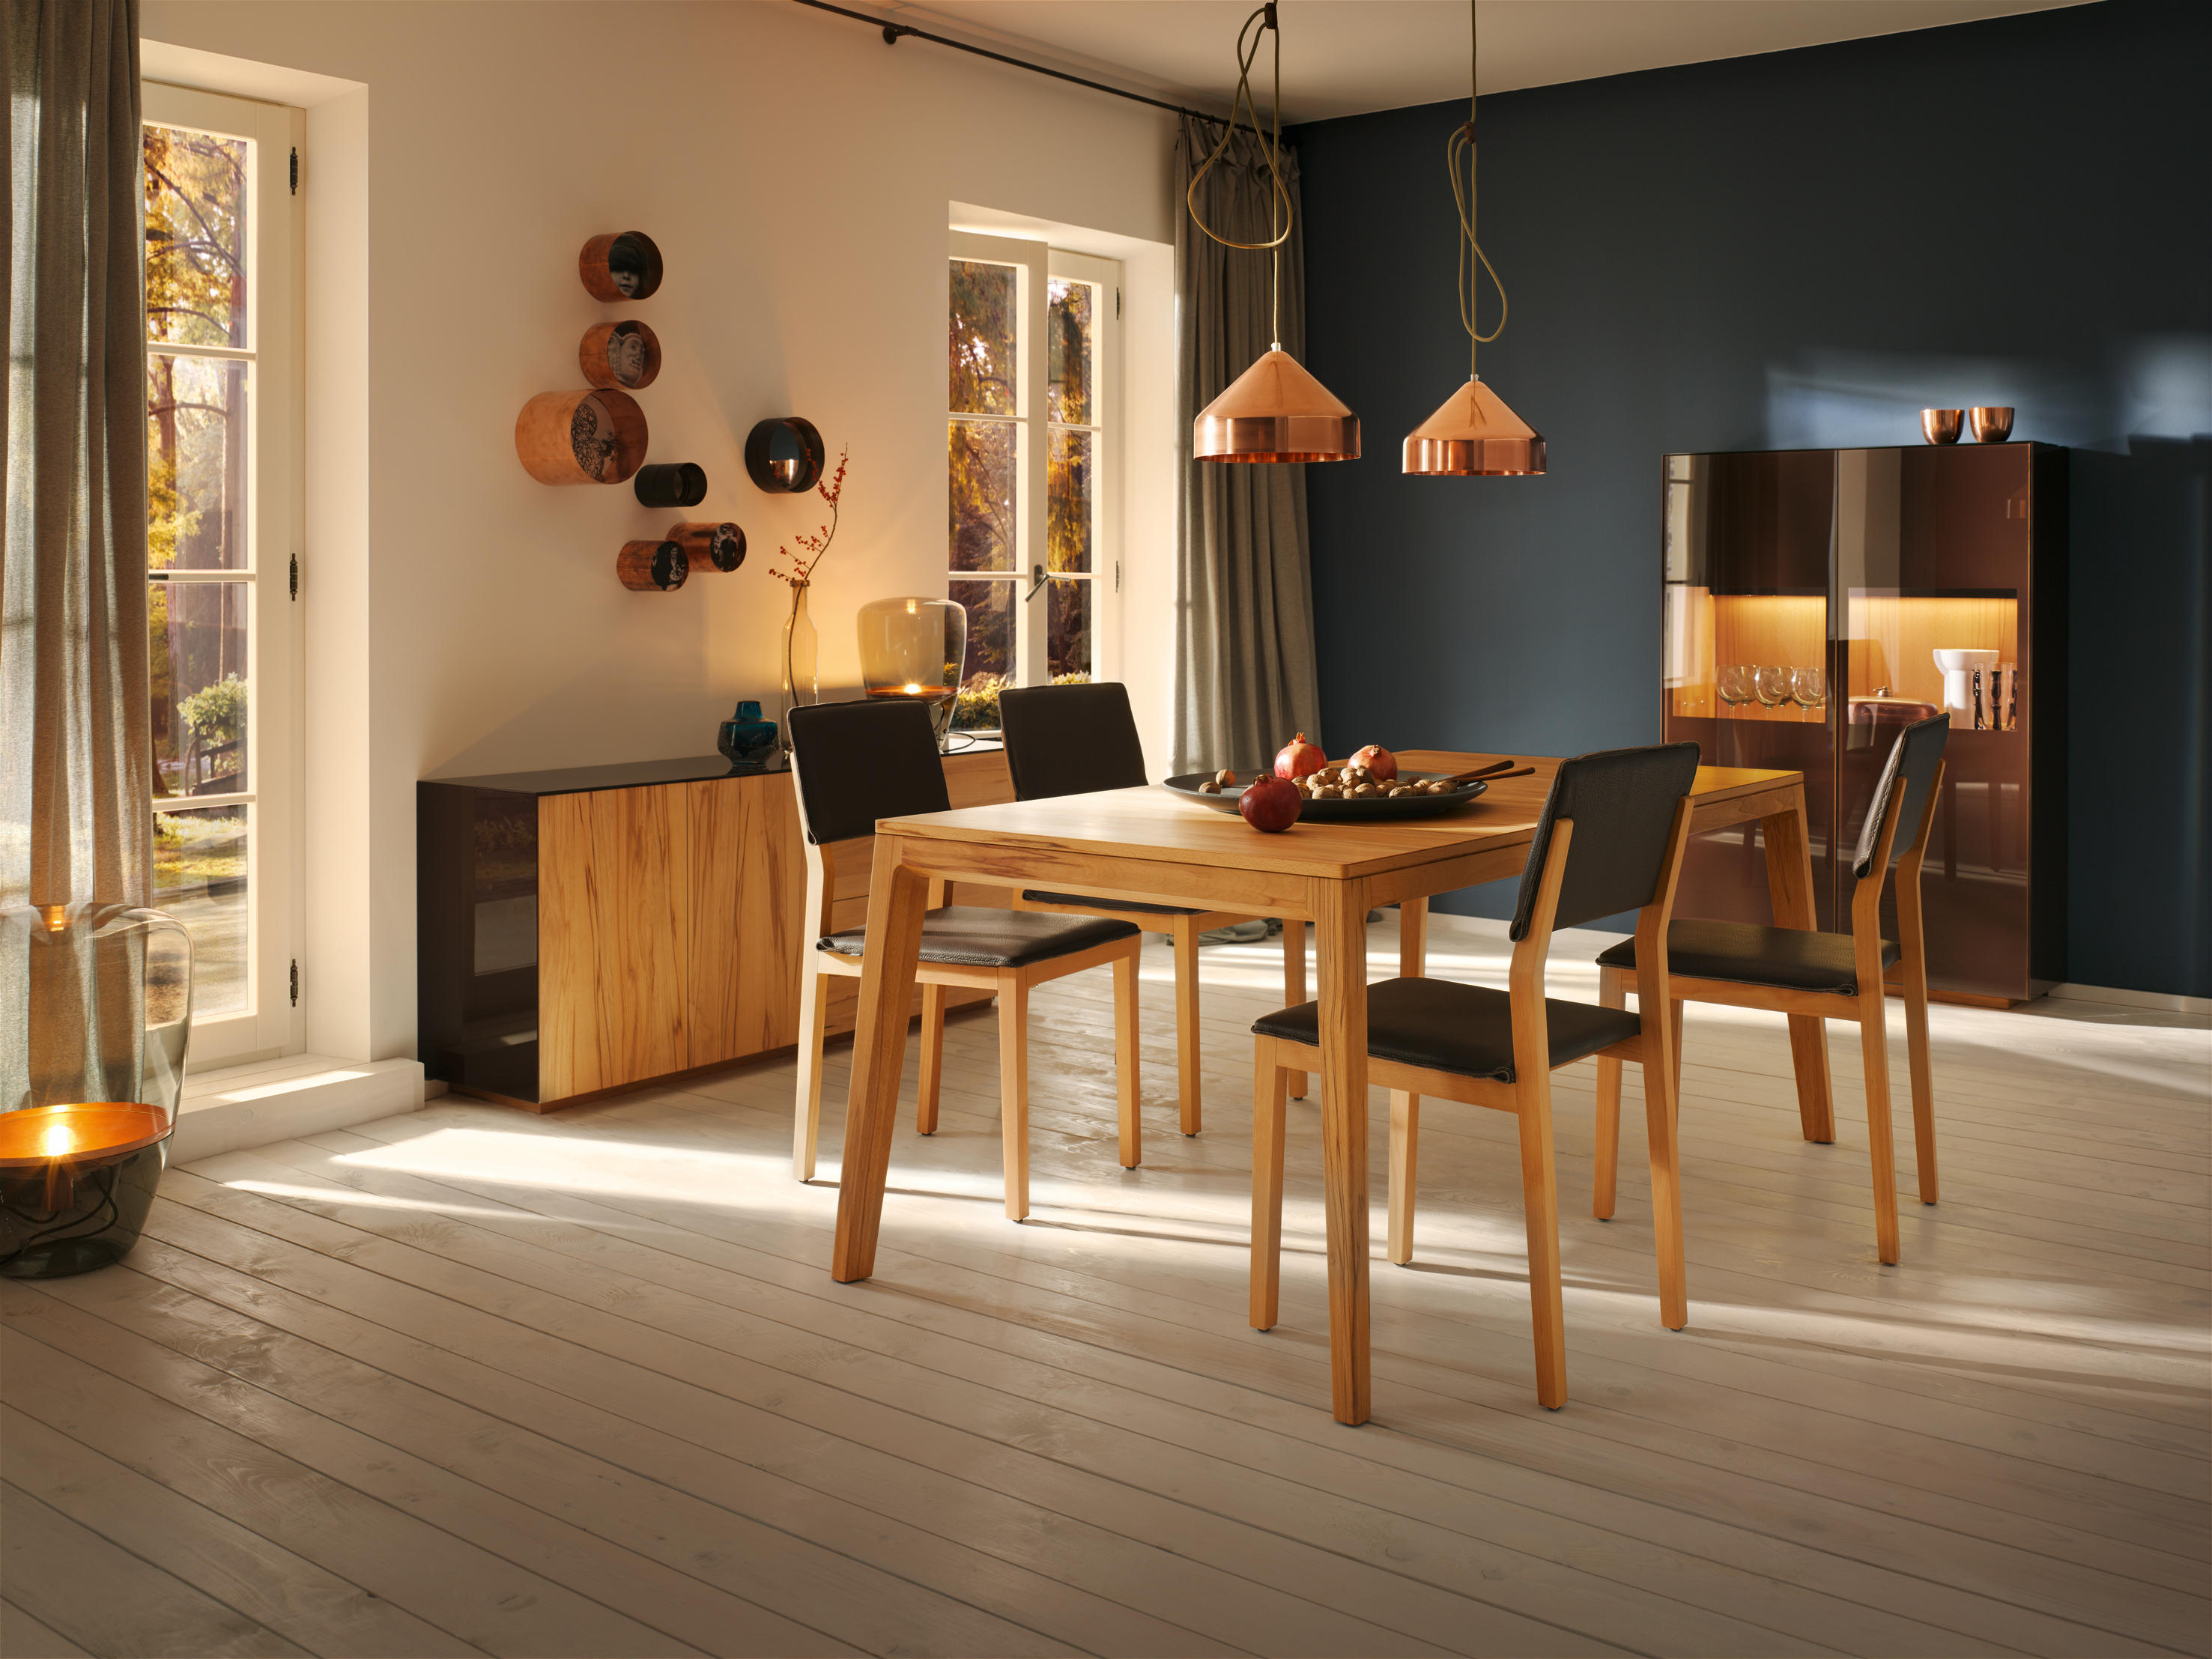 mylon table restaurant tables from team 7 architonic. Black Bedroom Furniture Sets. Home Design Ideas